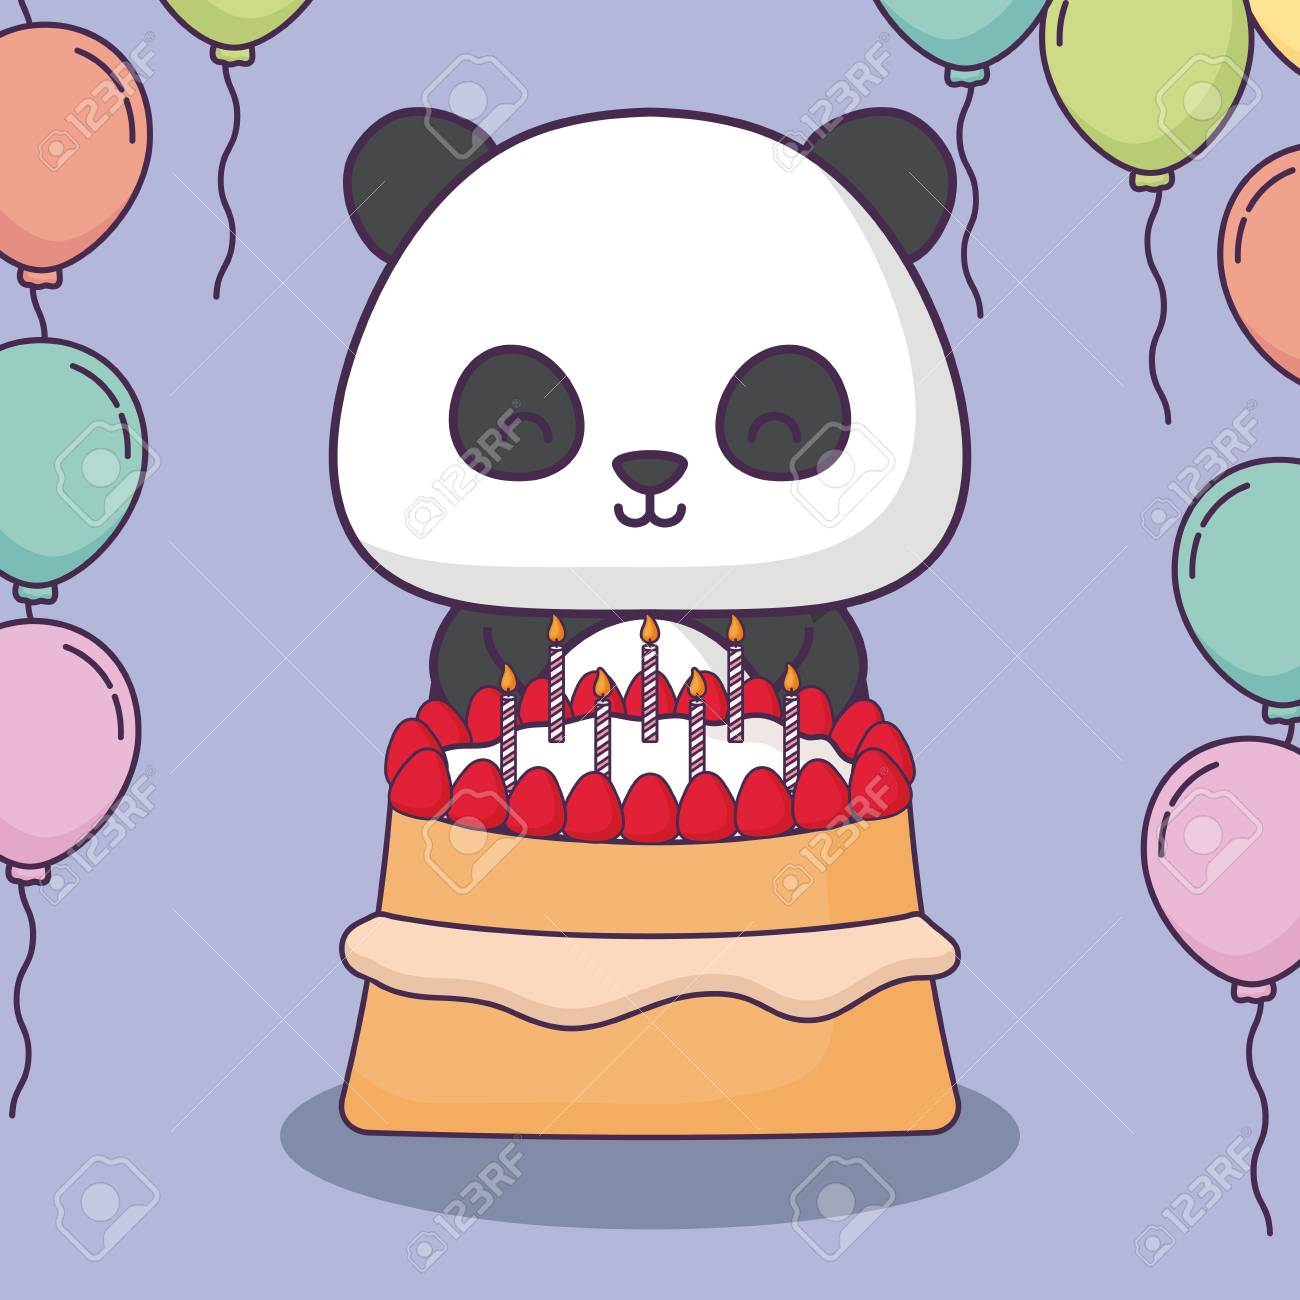 Cute Panda Bear With Birthday Cake And Decorative Balloons Over